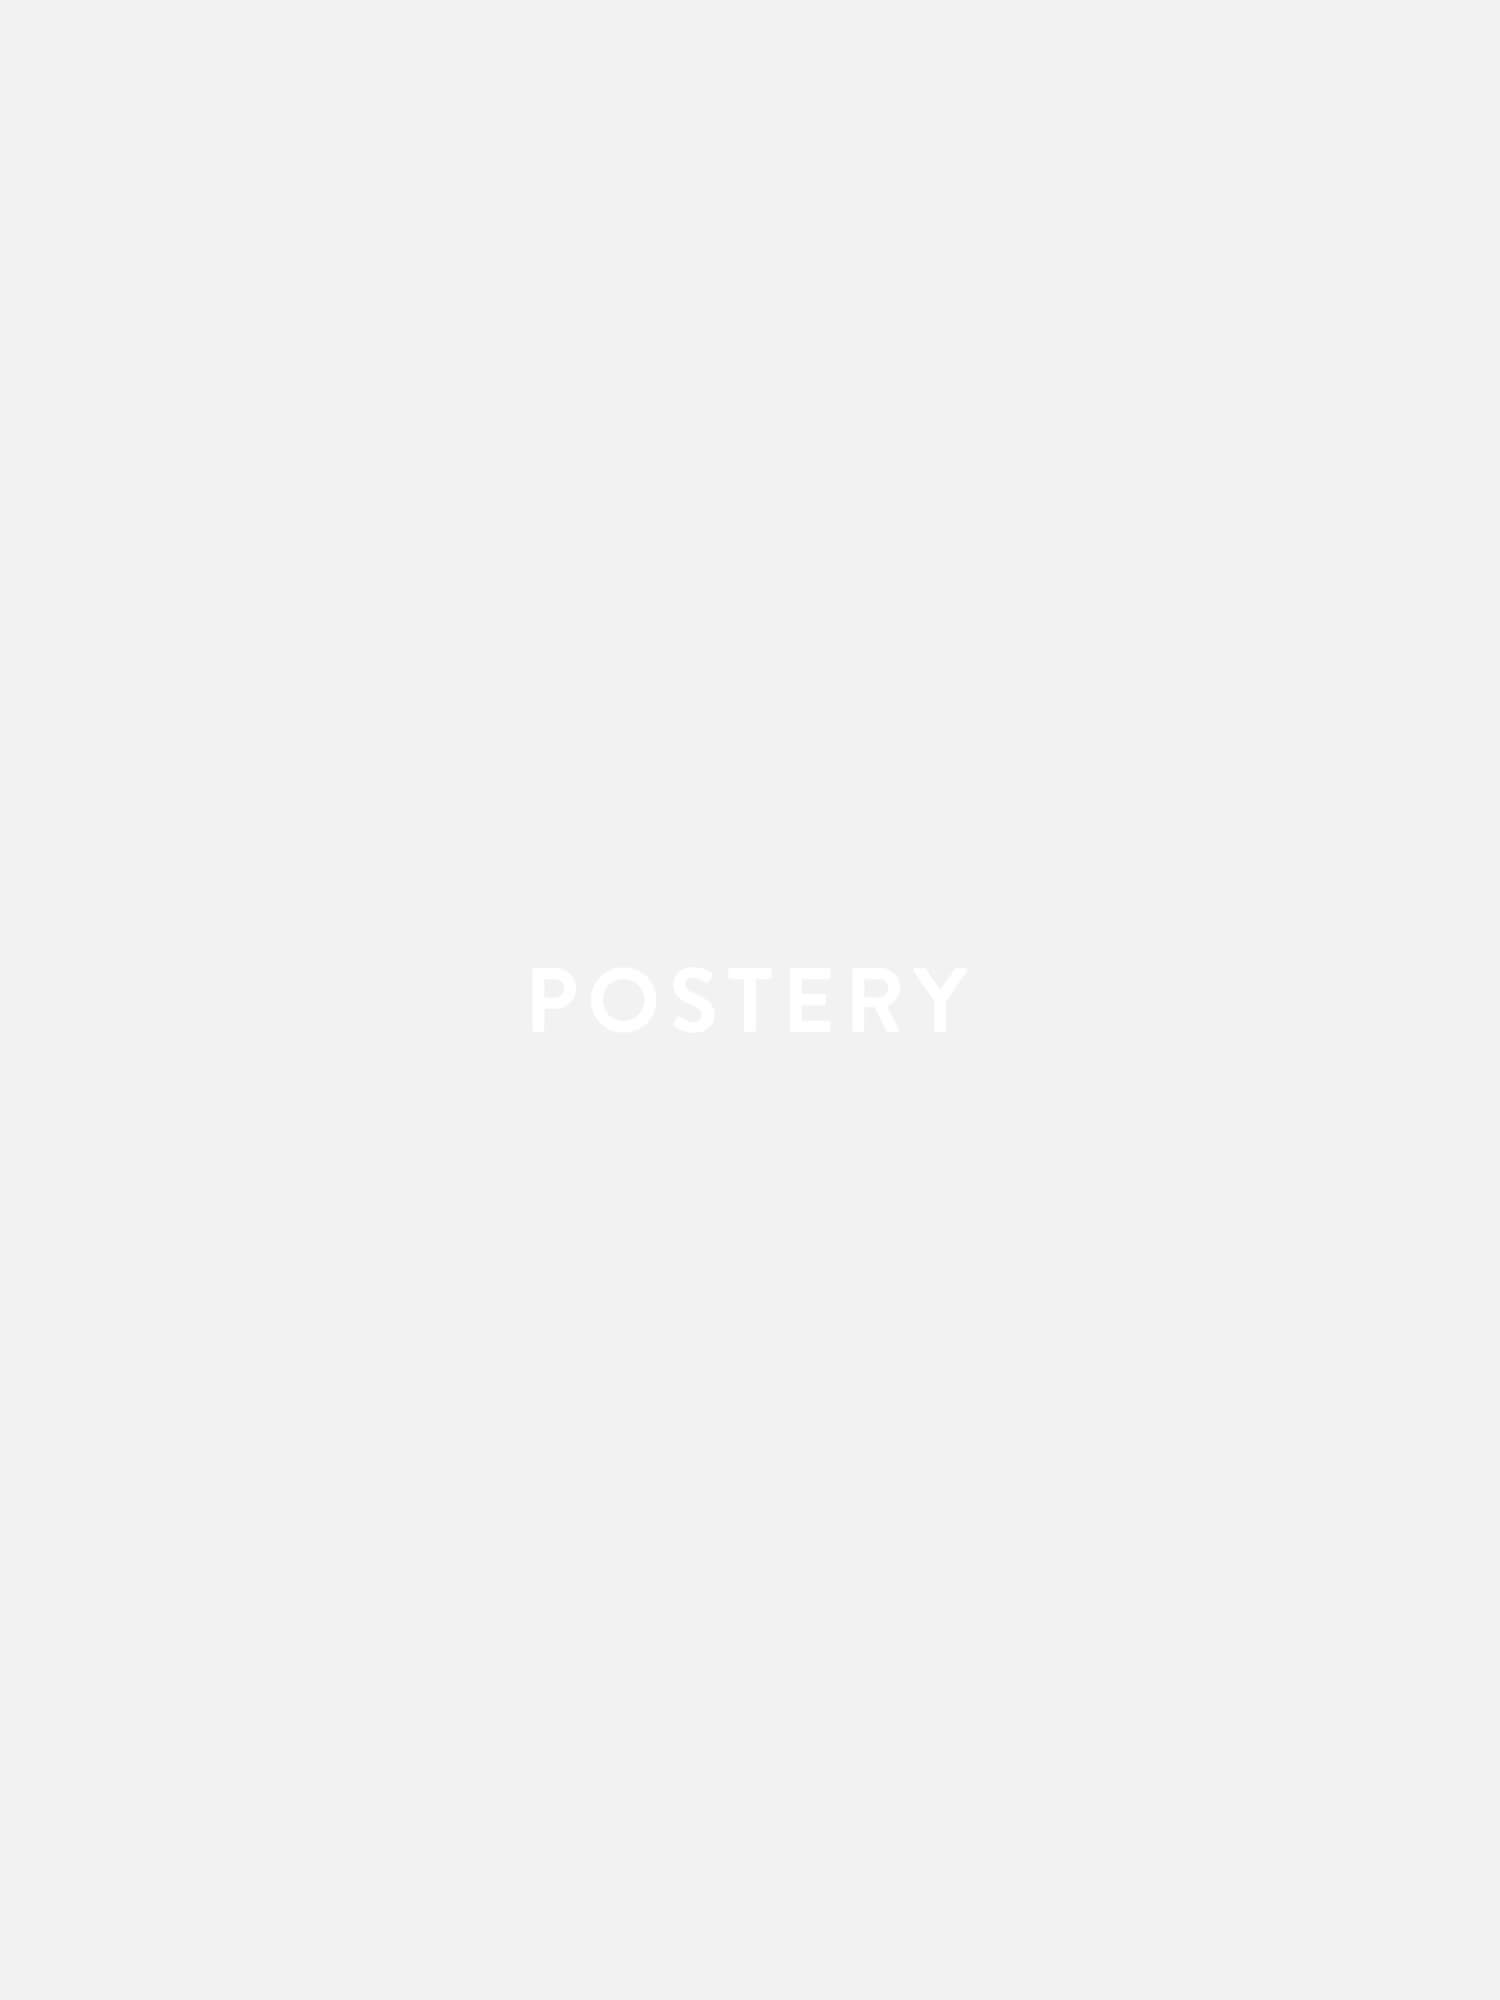 Champagne Glass Poster